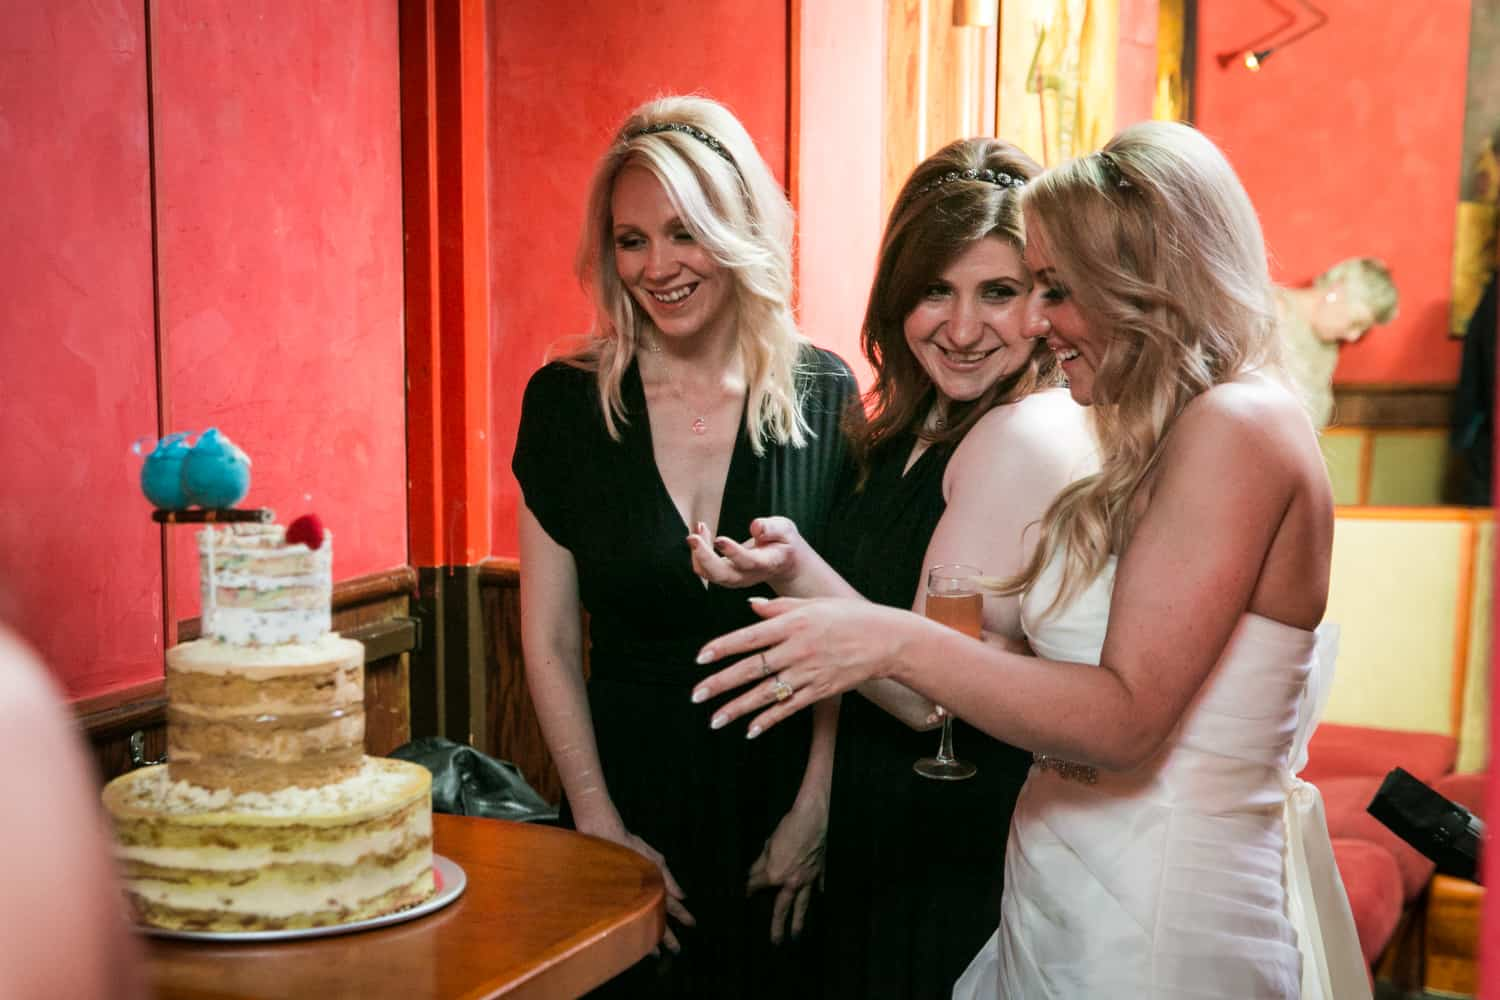 Bride showing off cake to female guests at a Bergdorf Goodman wedding reception